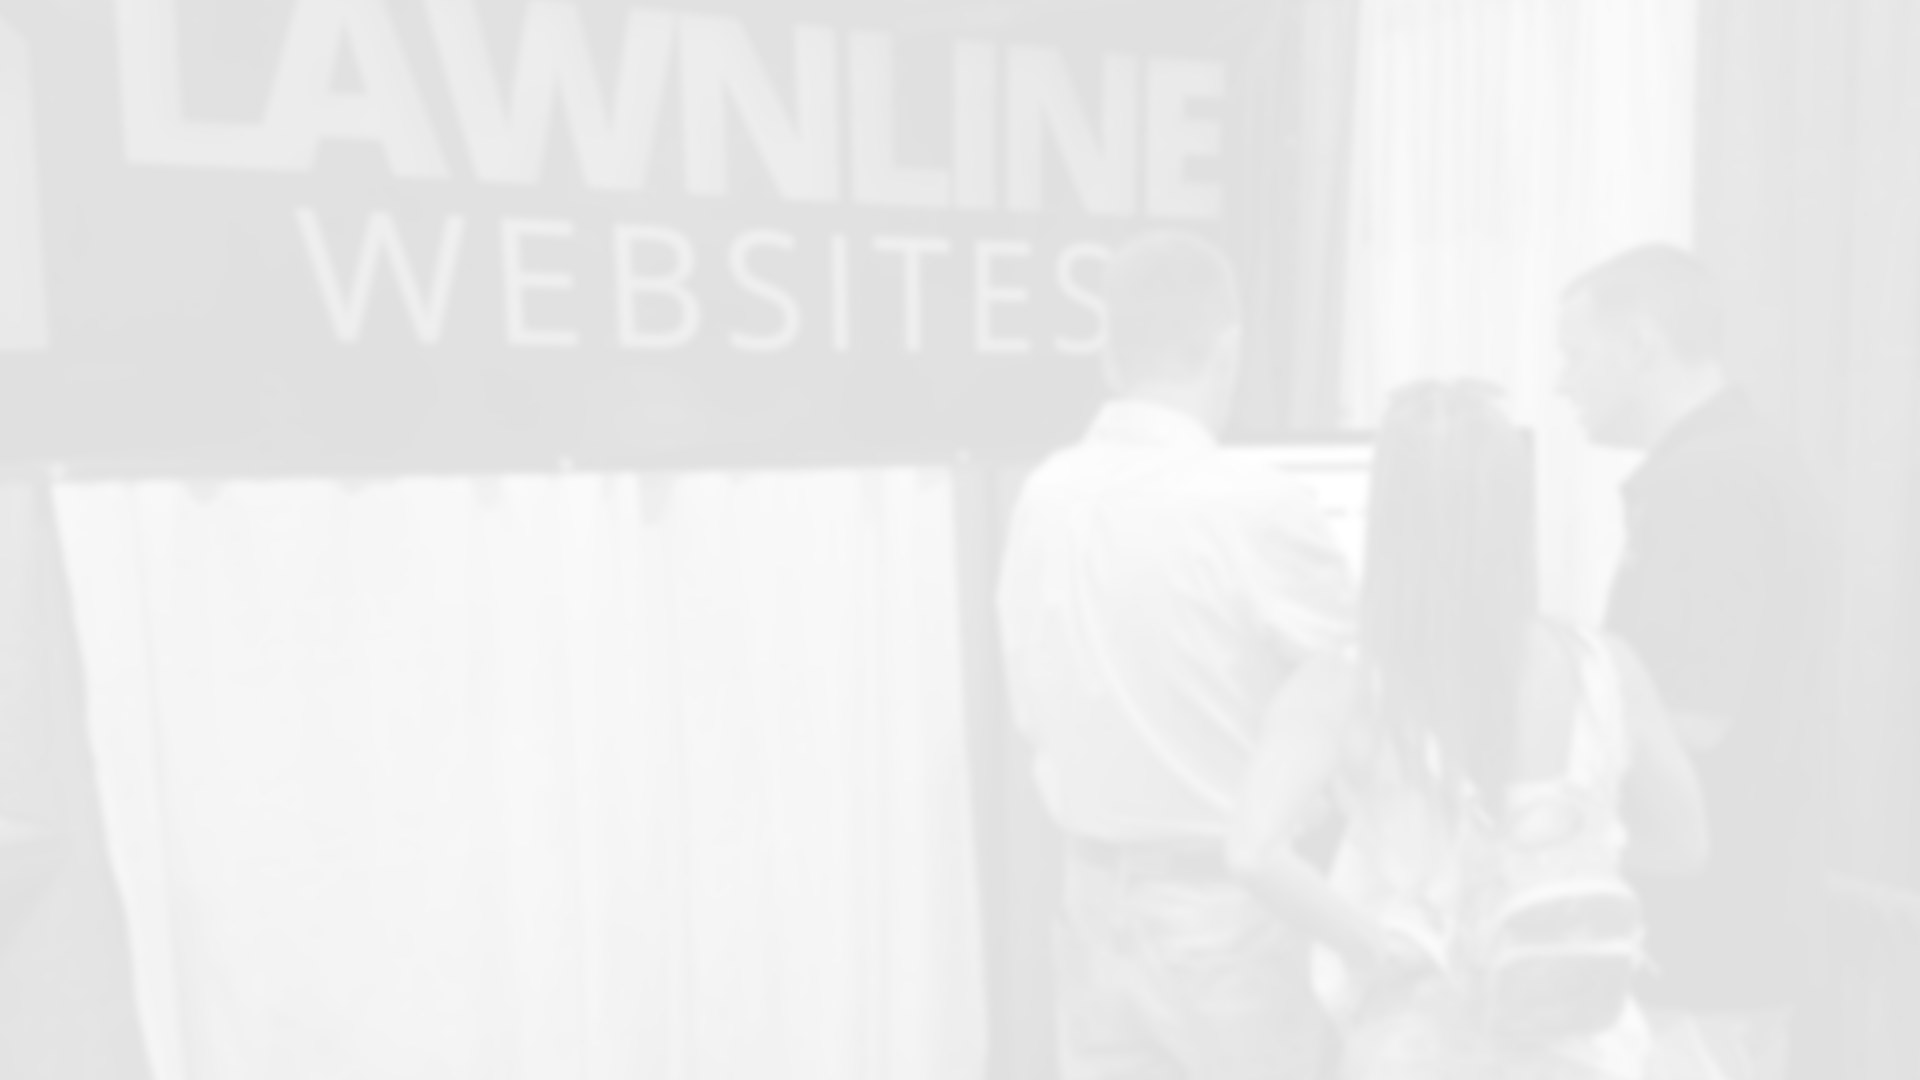 Lawnline Co-Founder/CEO, Tony Ricketts, teaching clients about websites and marketing.